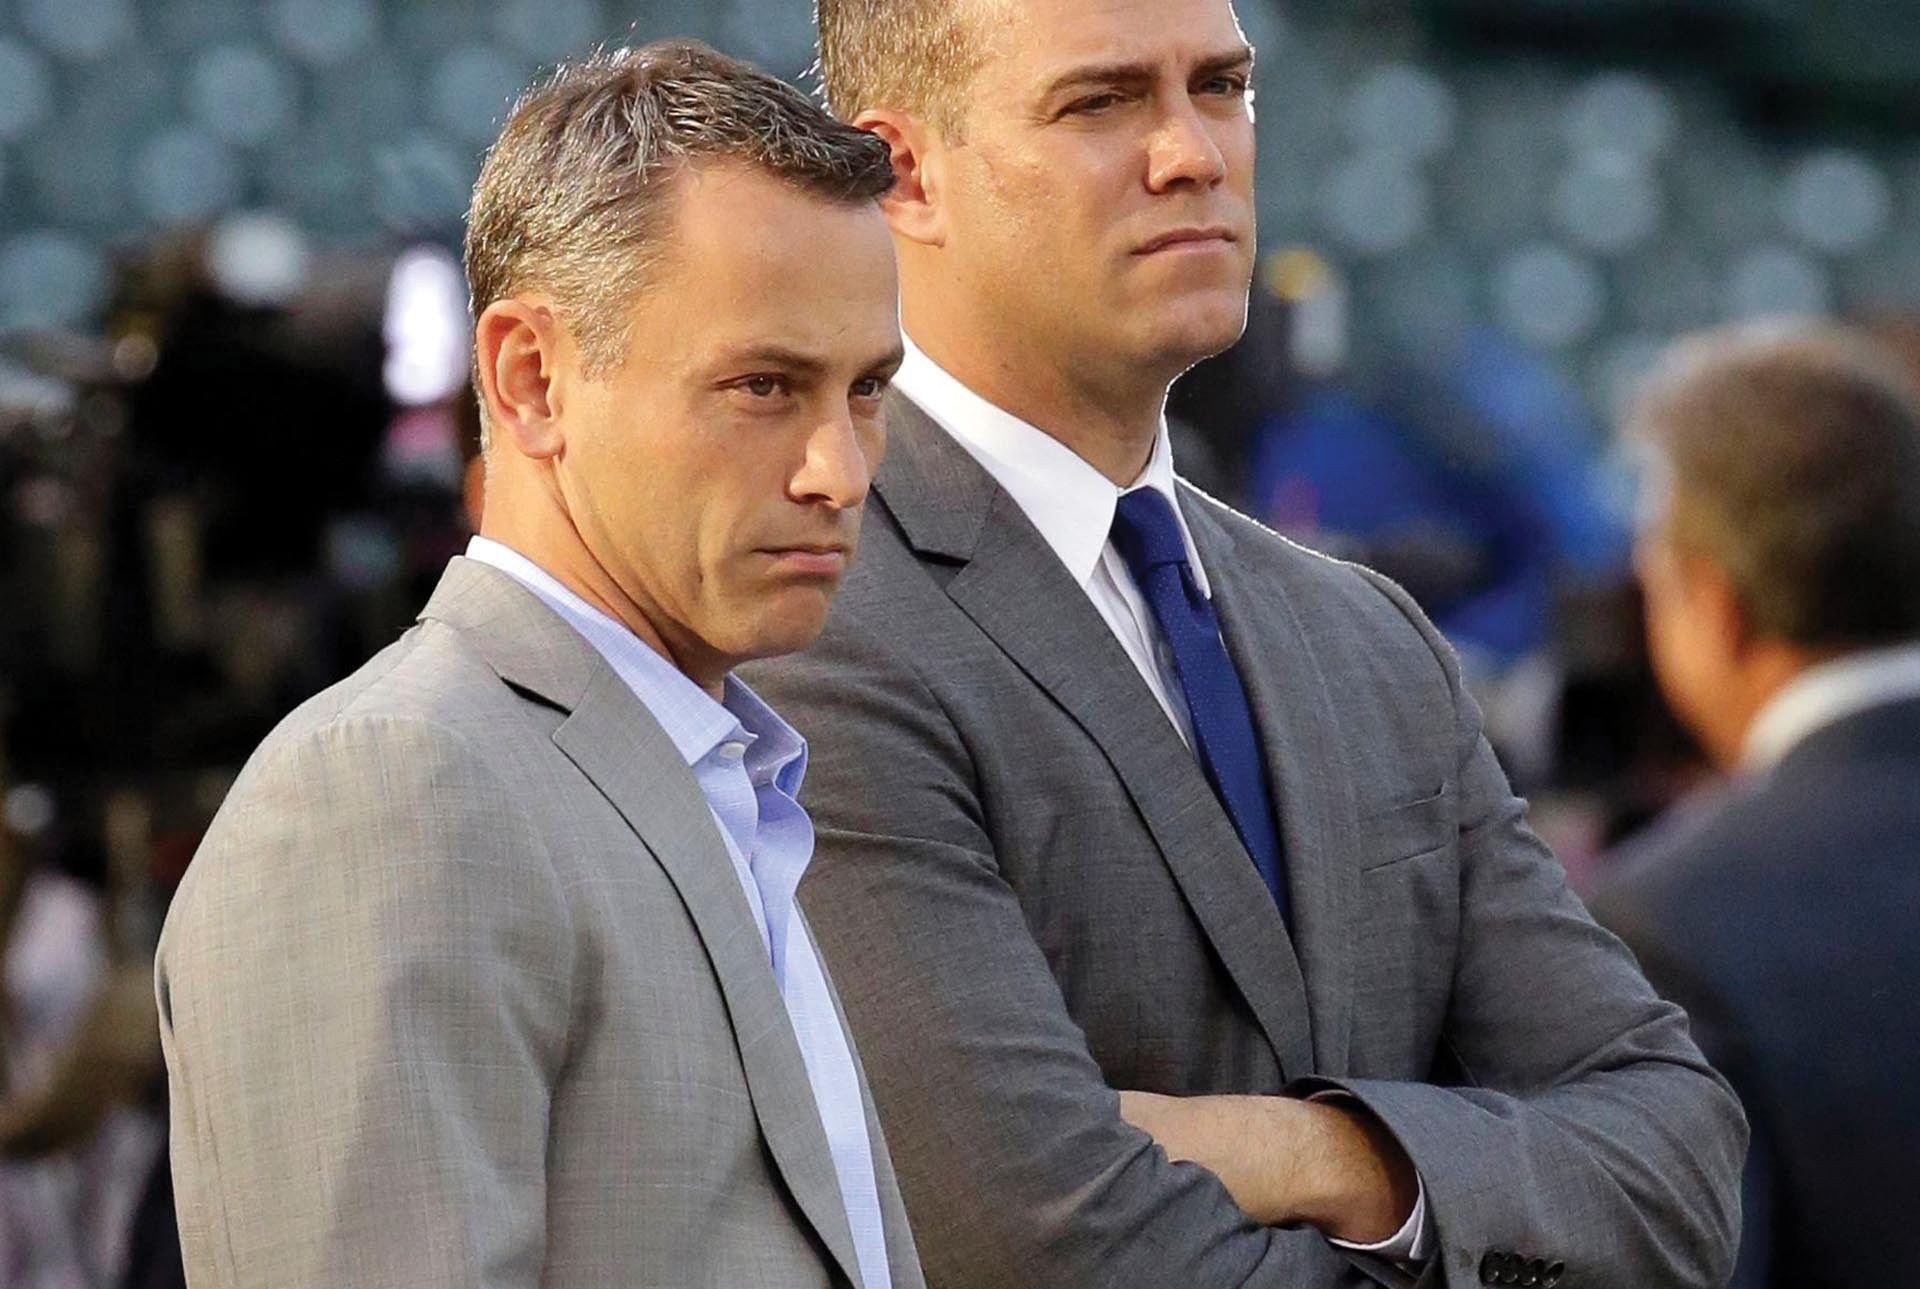 Next-Generation Analytics Do and Don't Make a Difference for Chicago Cubs GM Jed Hoyer '96